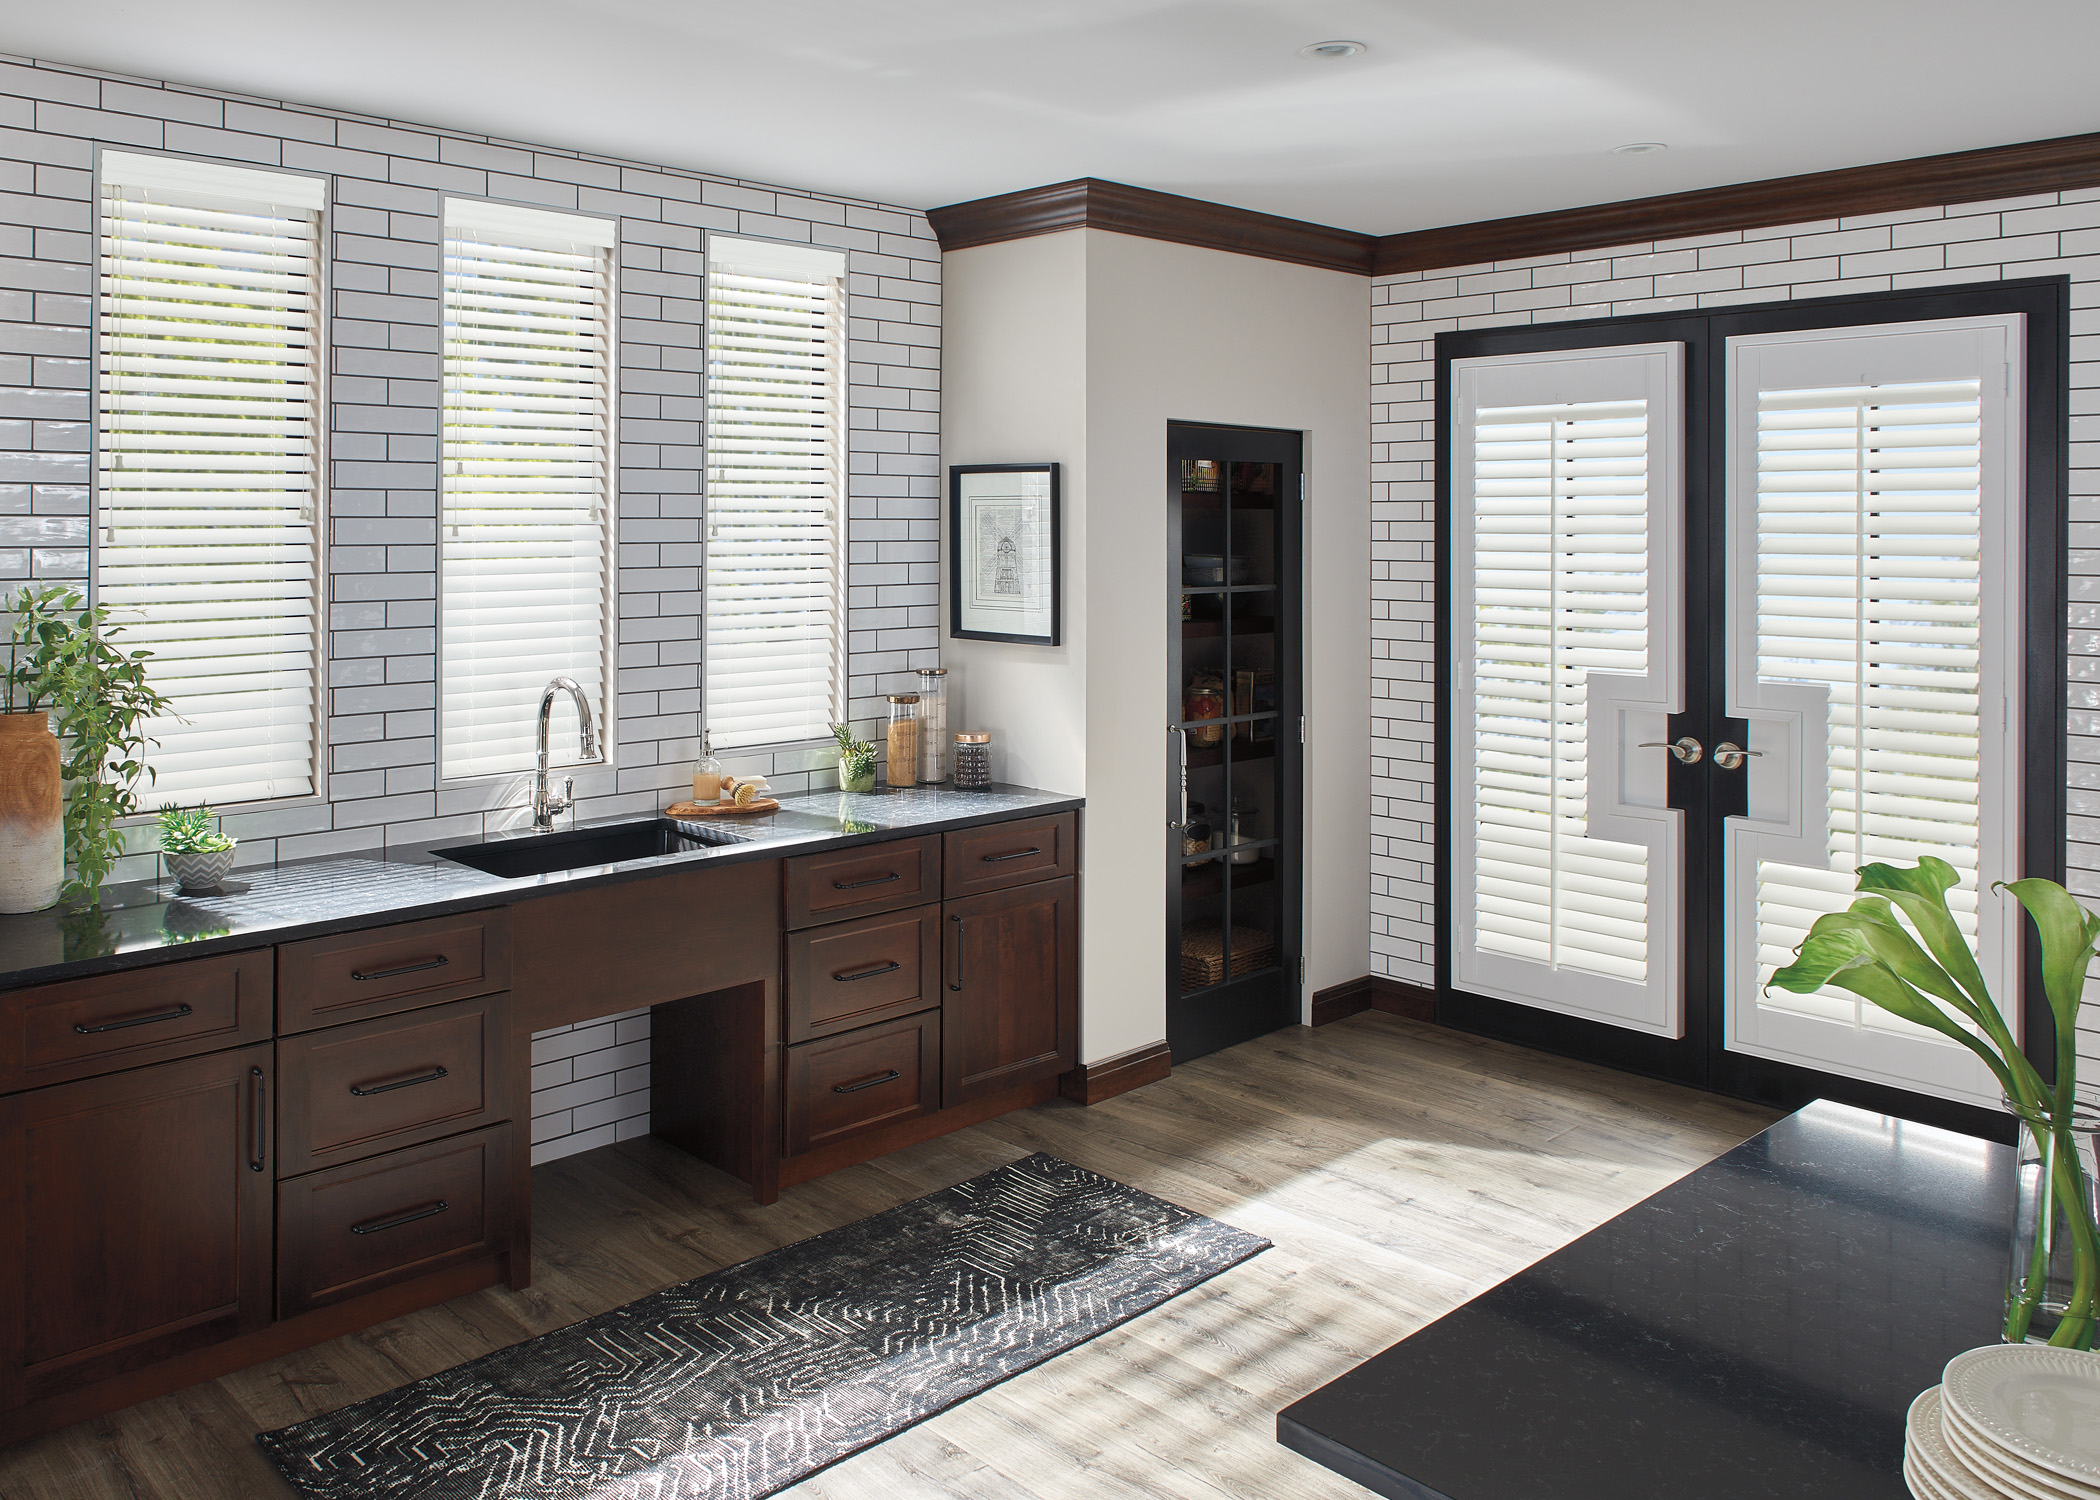 Graber_Composite Blinds_Kitchen1.jpg